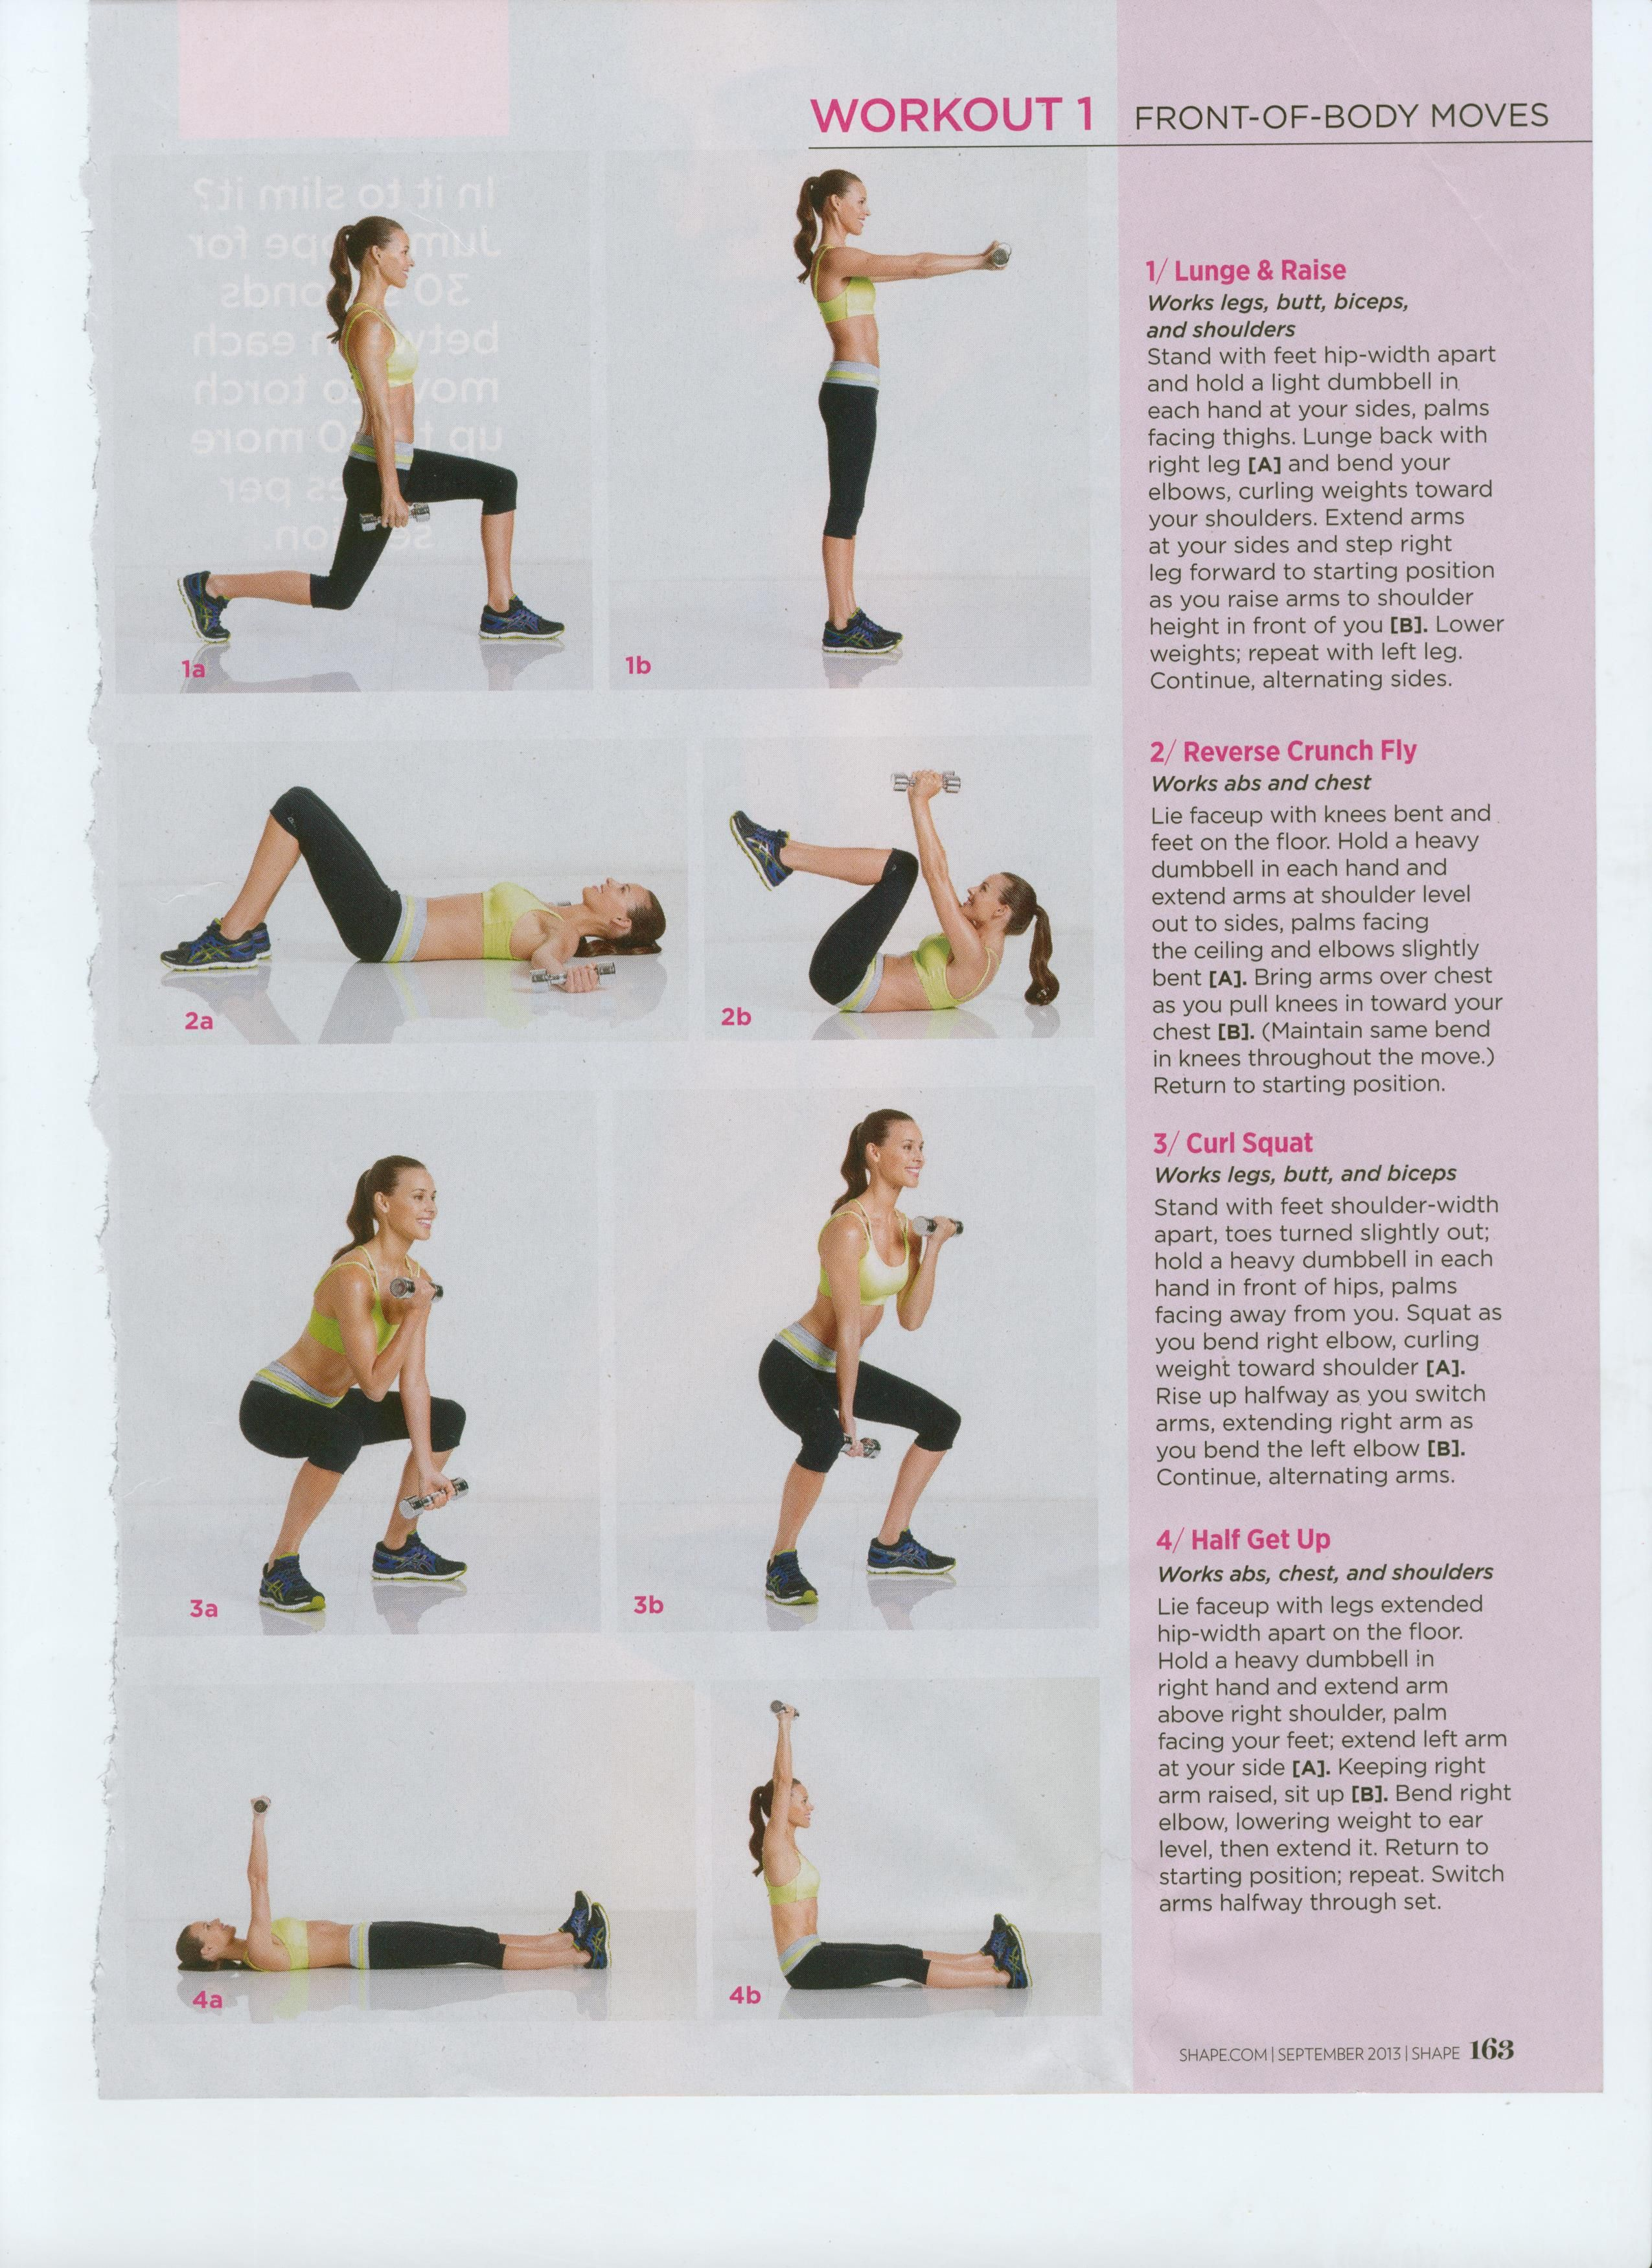 Get 360 Sexy - Workout #1 Shape Magazine - perform each